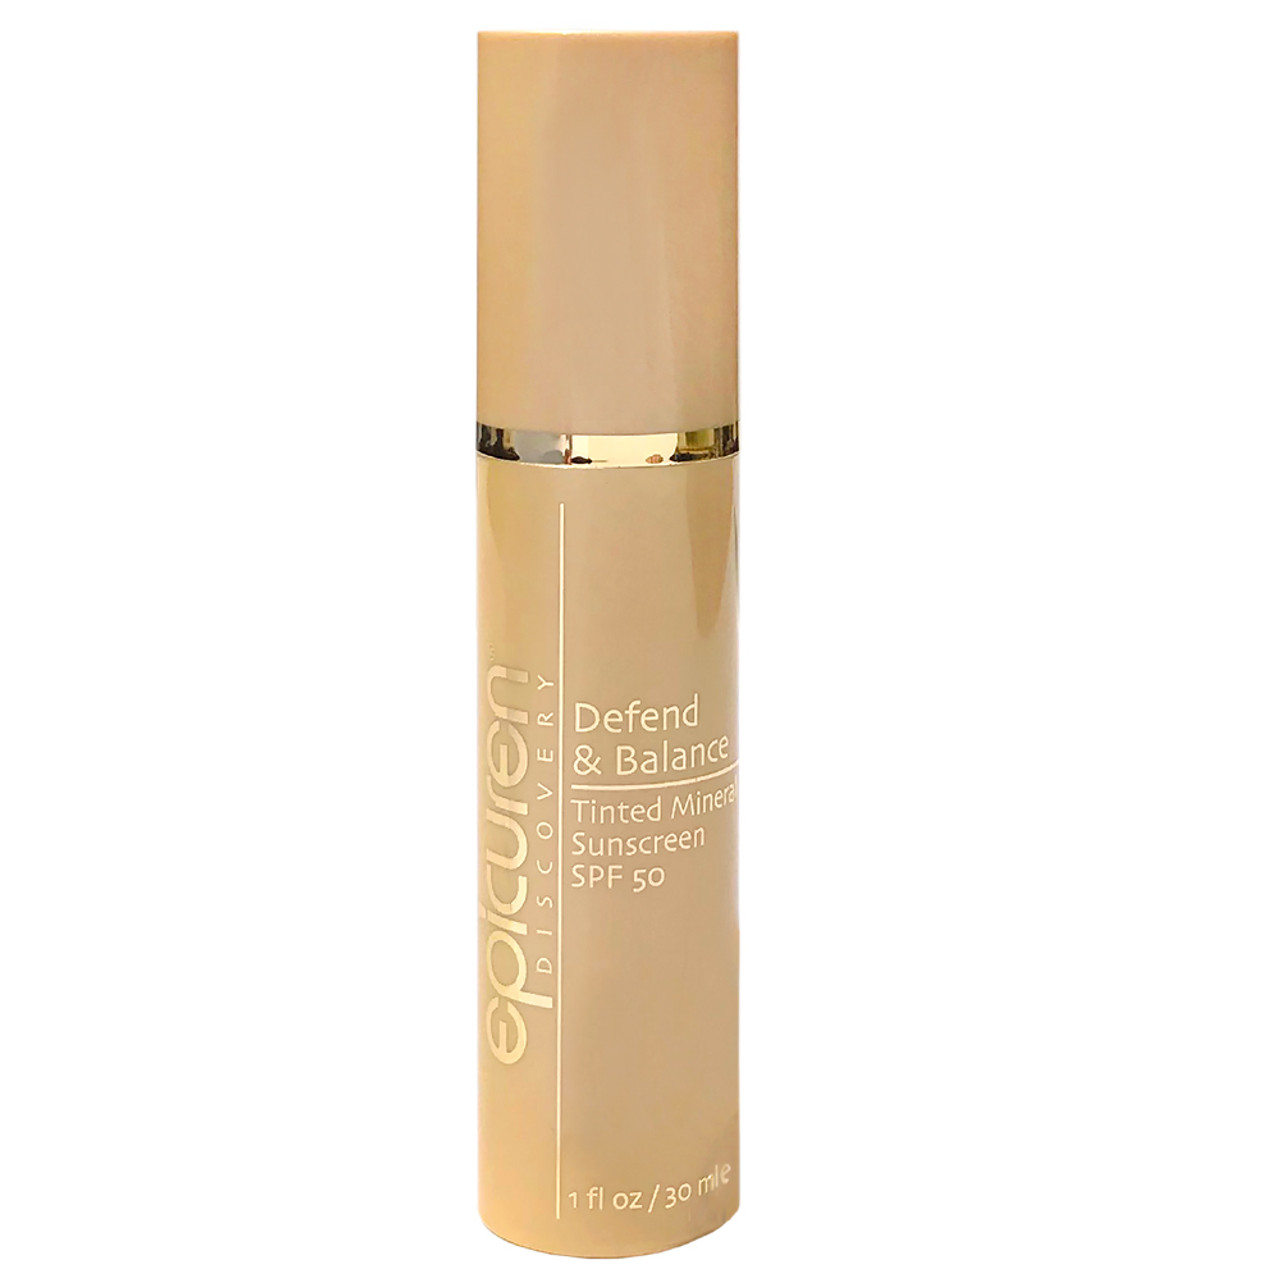 epicuren Discovery Defend and Balance Tinted Mineral Sunscreen SPF 50